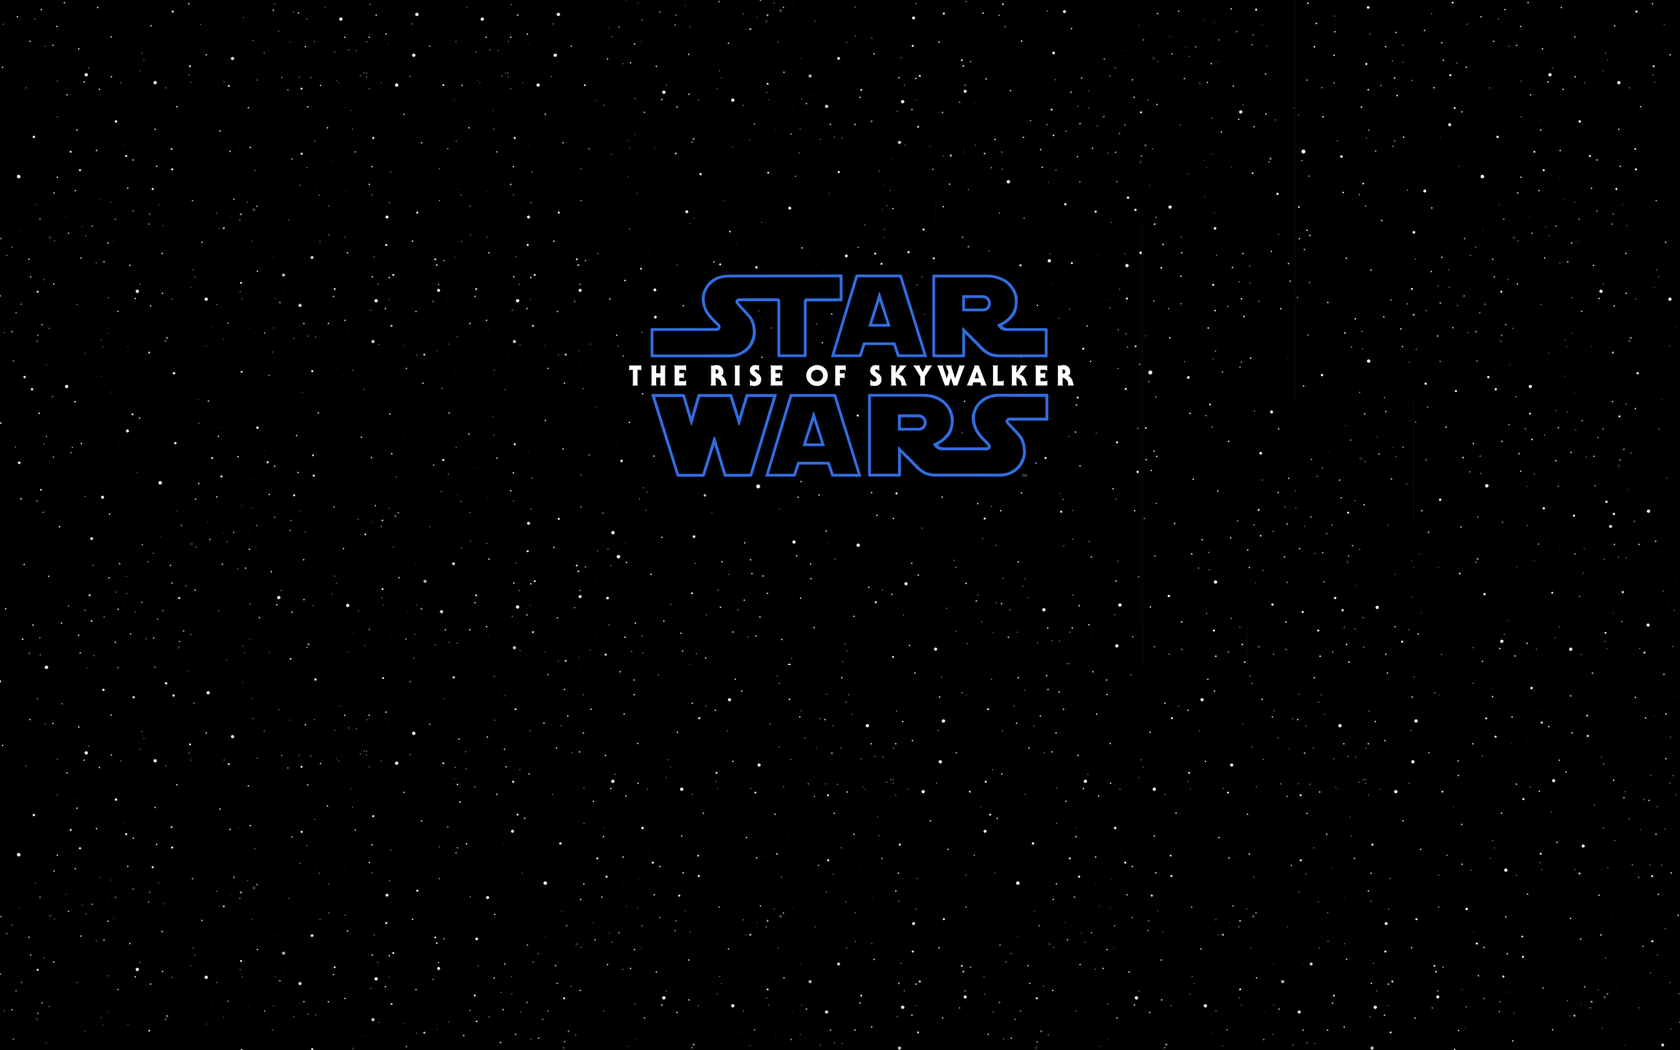 1680x1050 Star Wars The Rise Of Skywalker 2019 1680x1050 Resolution